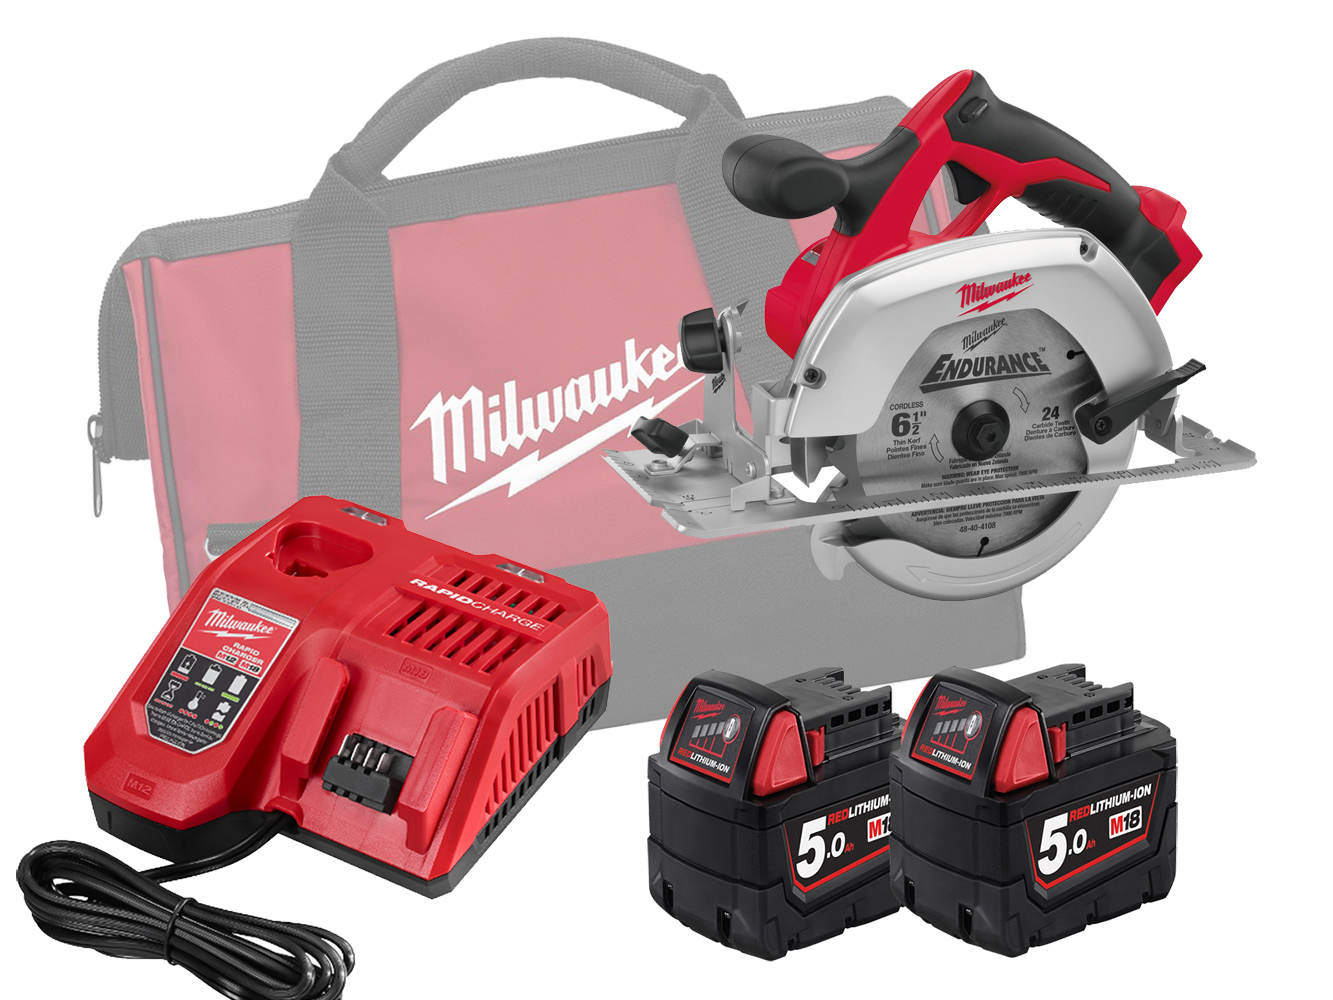 Milwaukee HD18CS 18V Heavy Duty 165mm (55mm) Circular Saw for Wood and Plastic - 5.0ah Pack